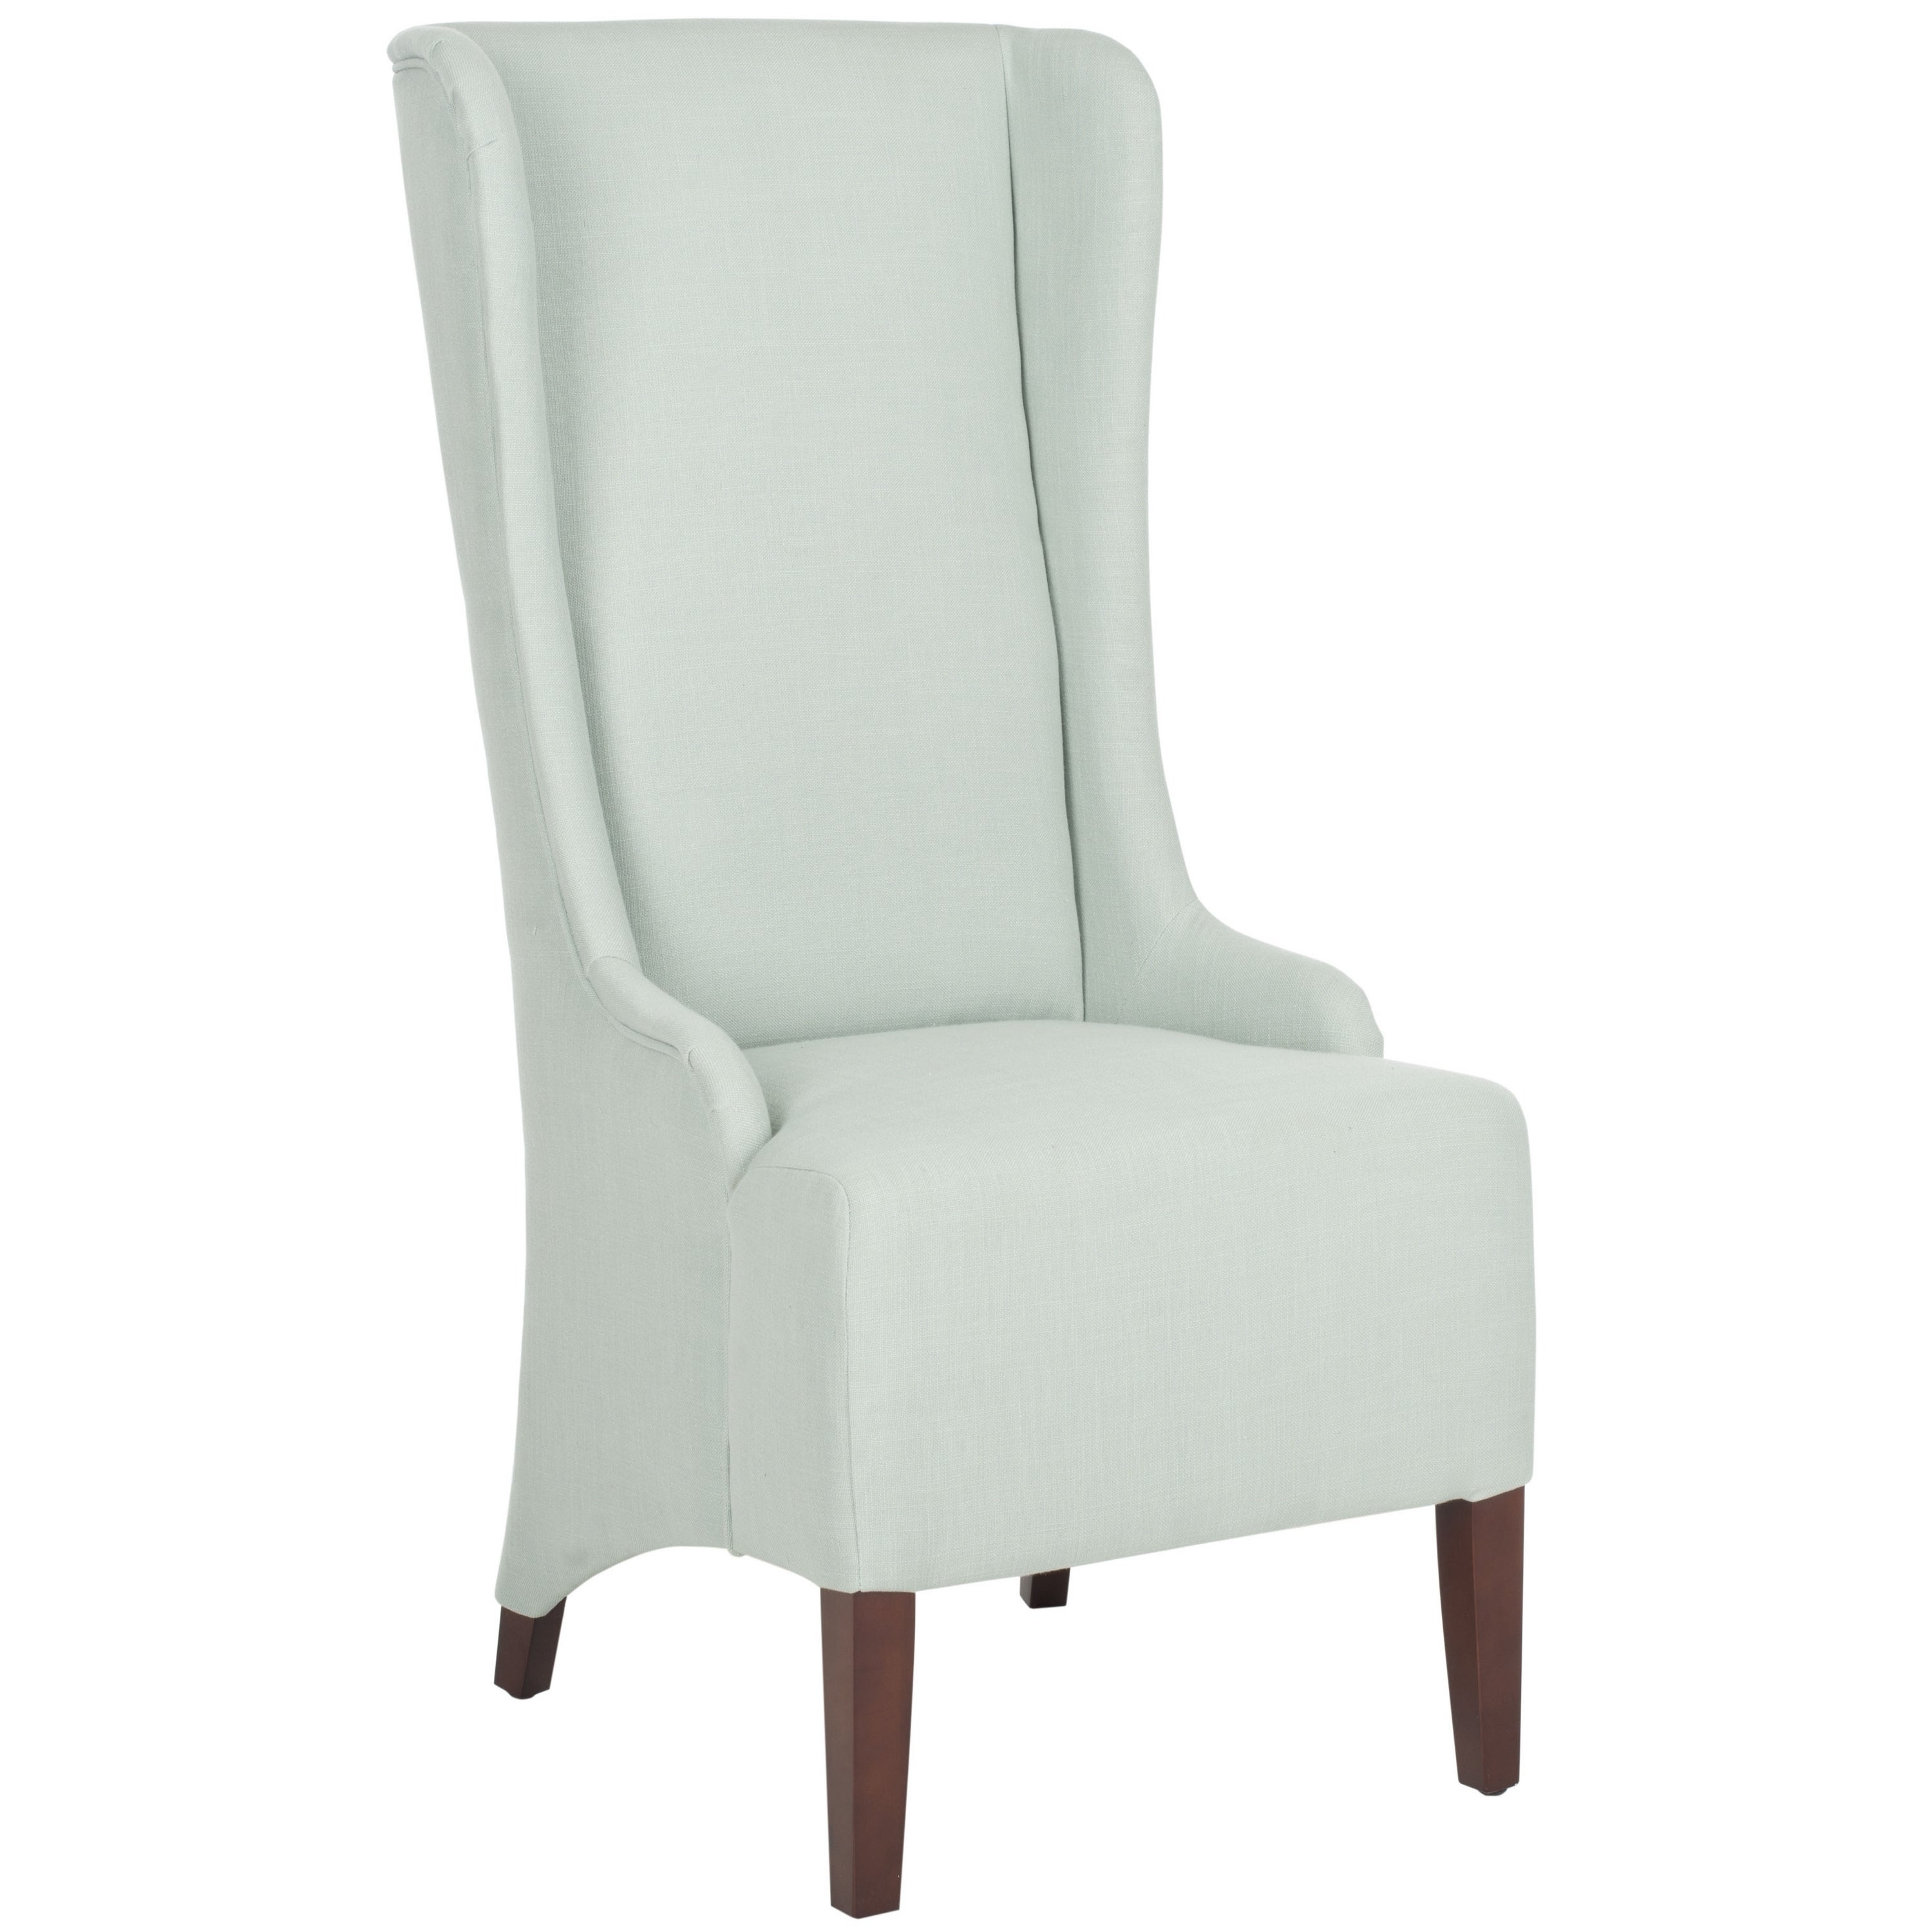 Safavieh En Vogue Dining Bacall Seafoam Green Chair On Free Shipping Today 8419833